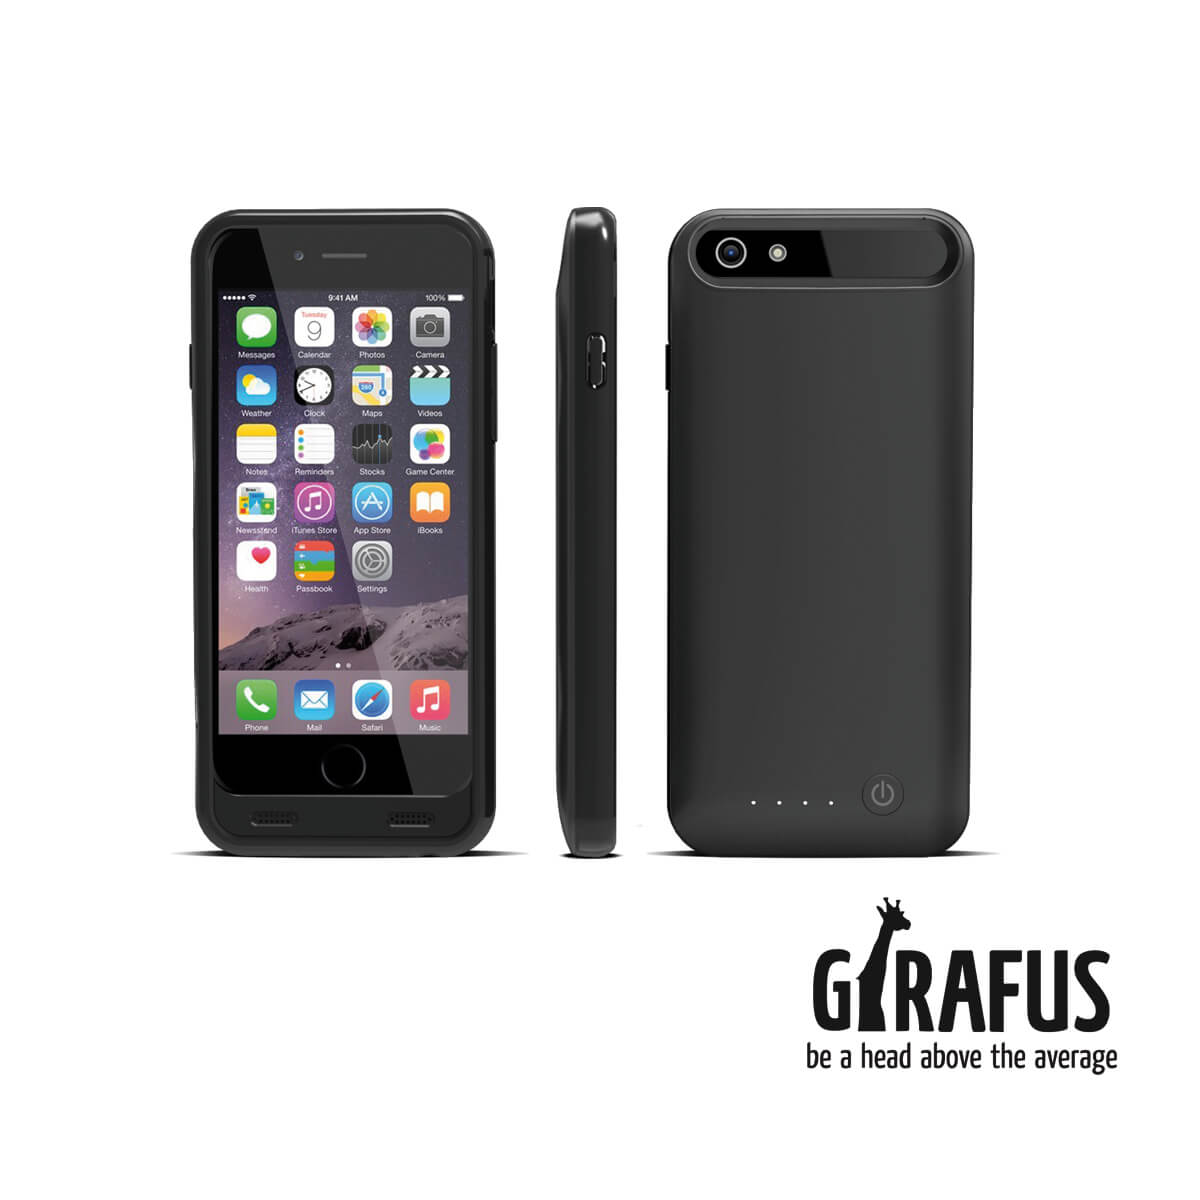 apple mfi zertifiziert girafus 3100mah high end iphone 6 6s externes akku batterie cover. Black Bedroom Furniture Sets. Home Design Ideas